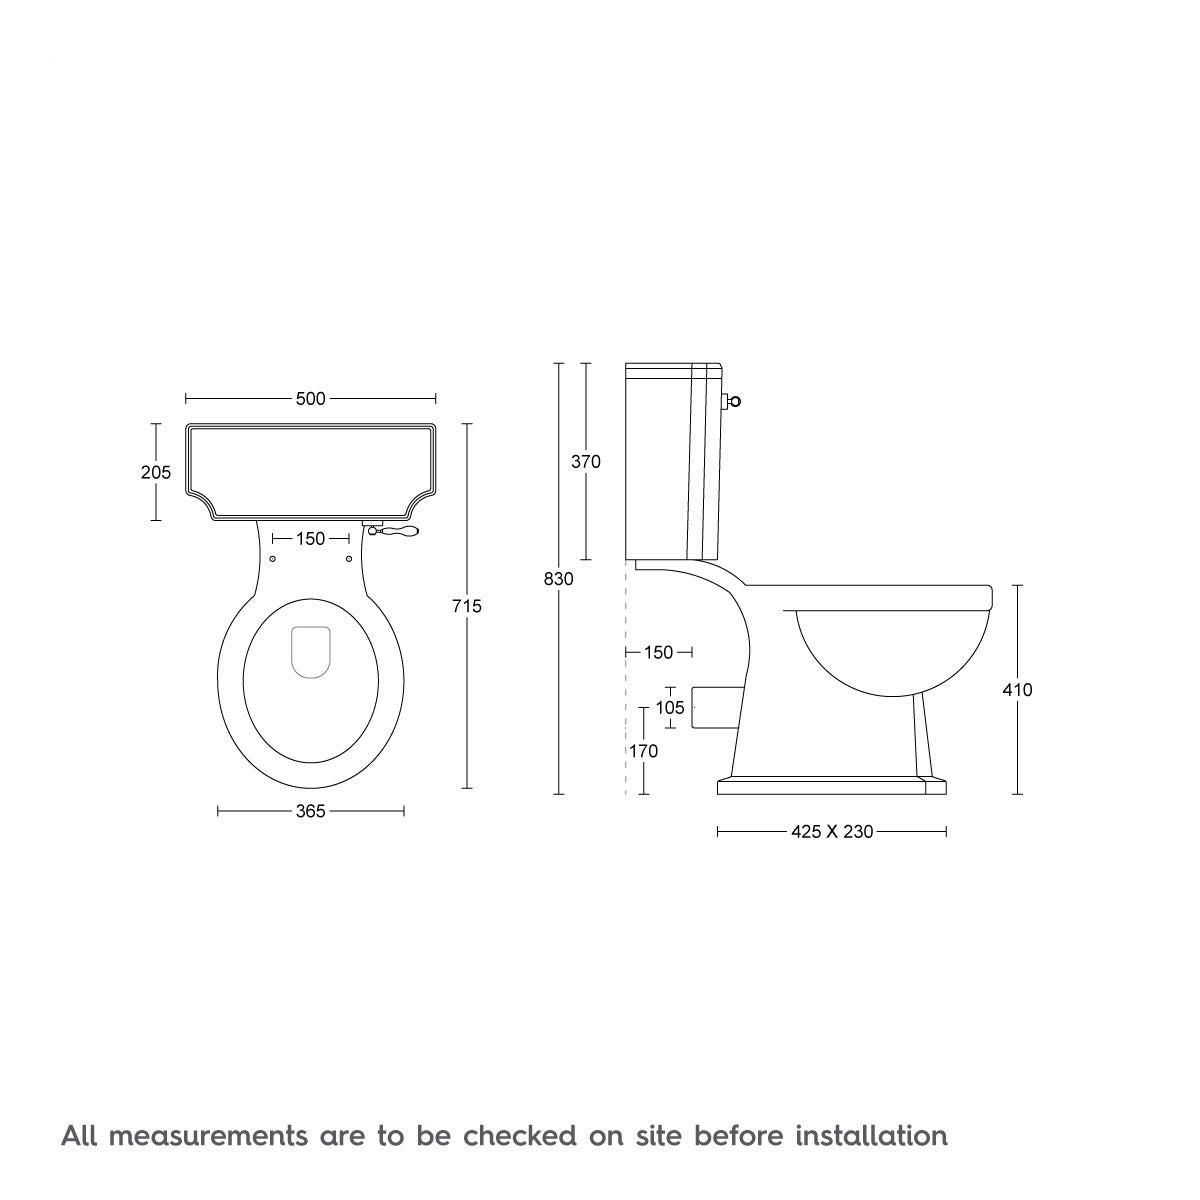 Dimensions for The Bath Co. Dulwich close coupled toilet with wooden toilet seat oak effect